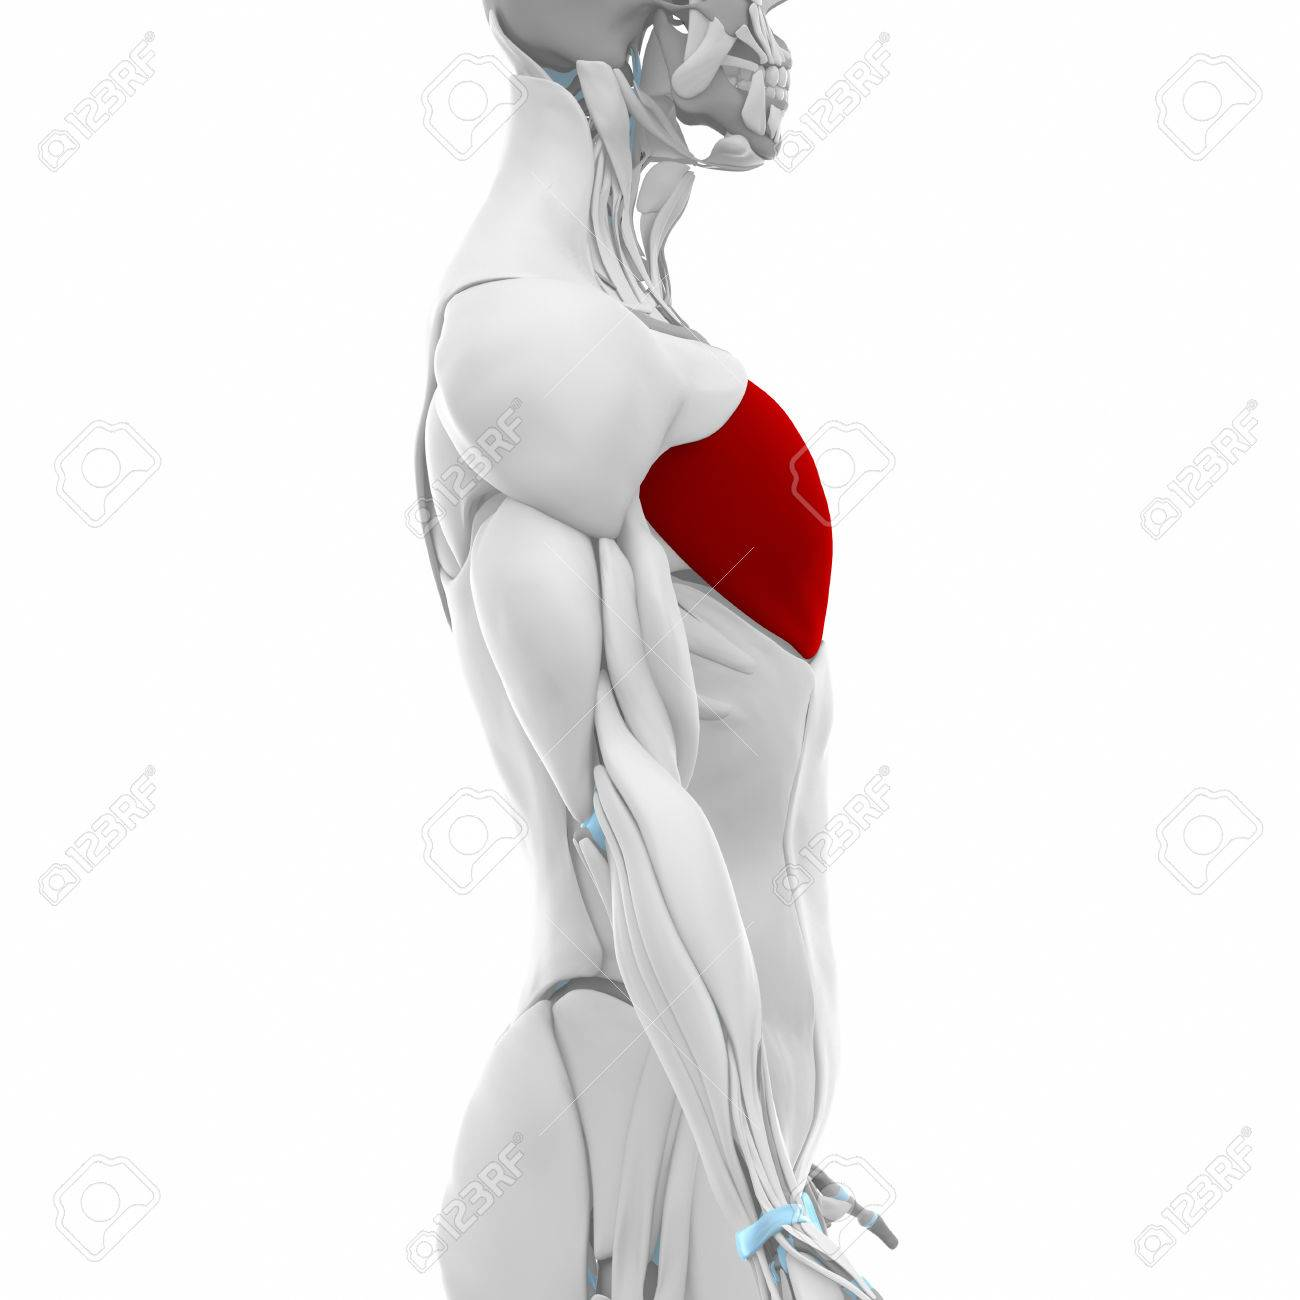 Pectoralis Major - Muscles Anatomy Map Stock Photo, Picture And ...